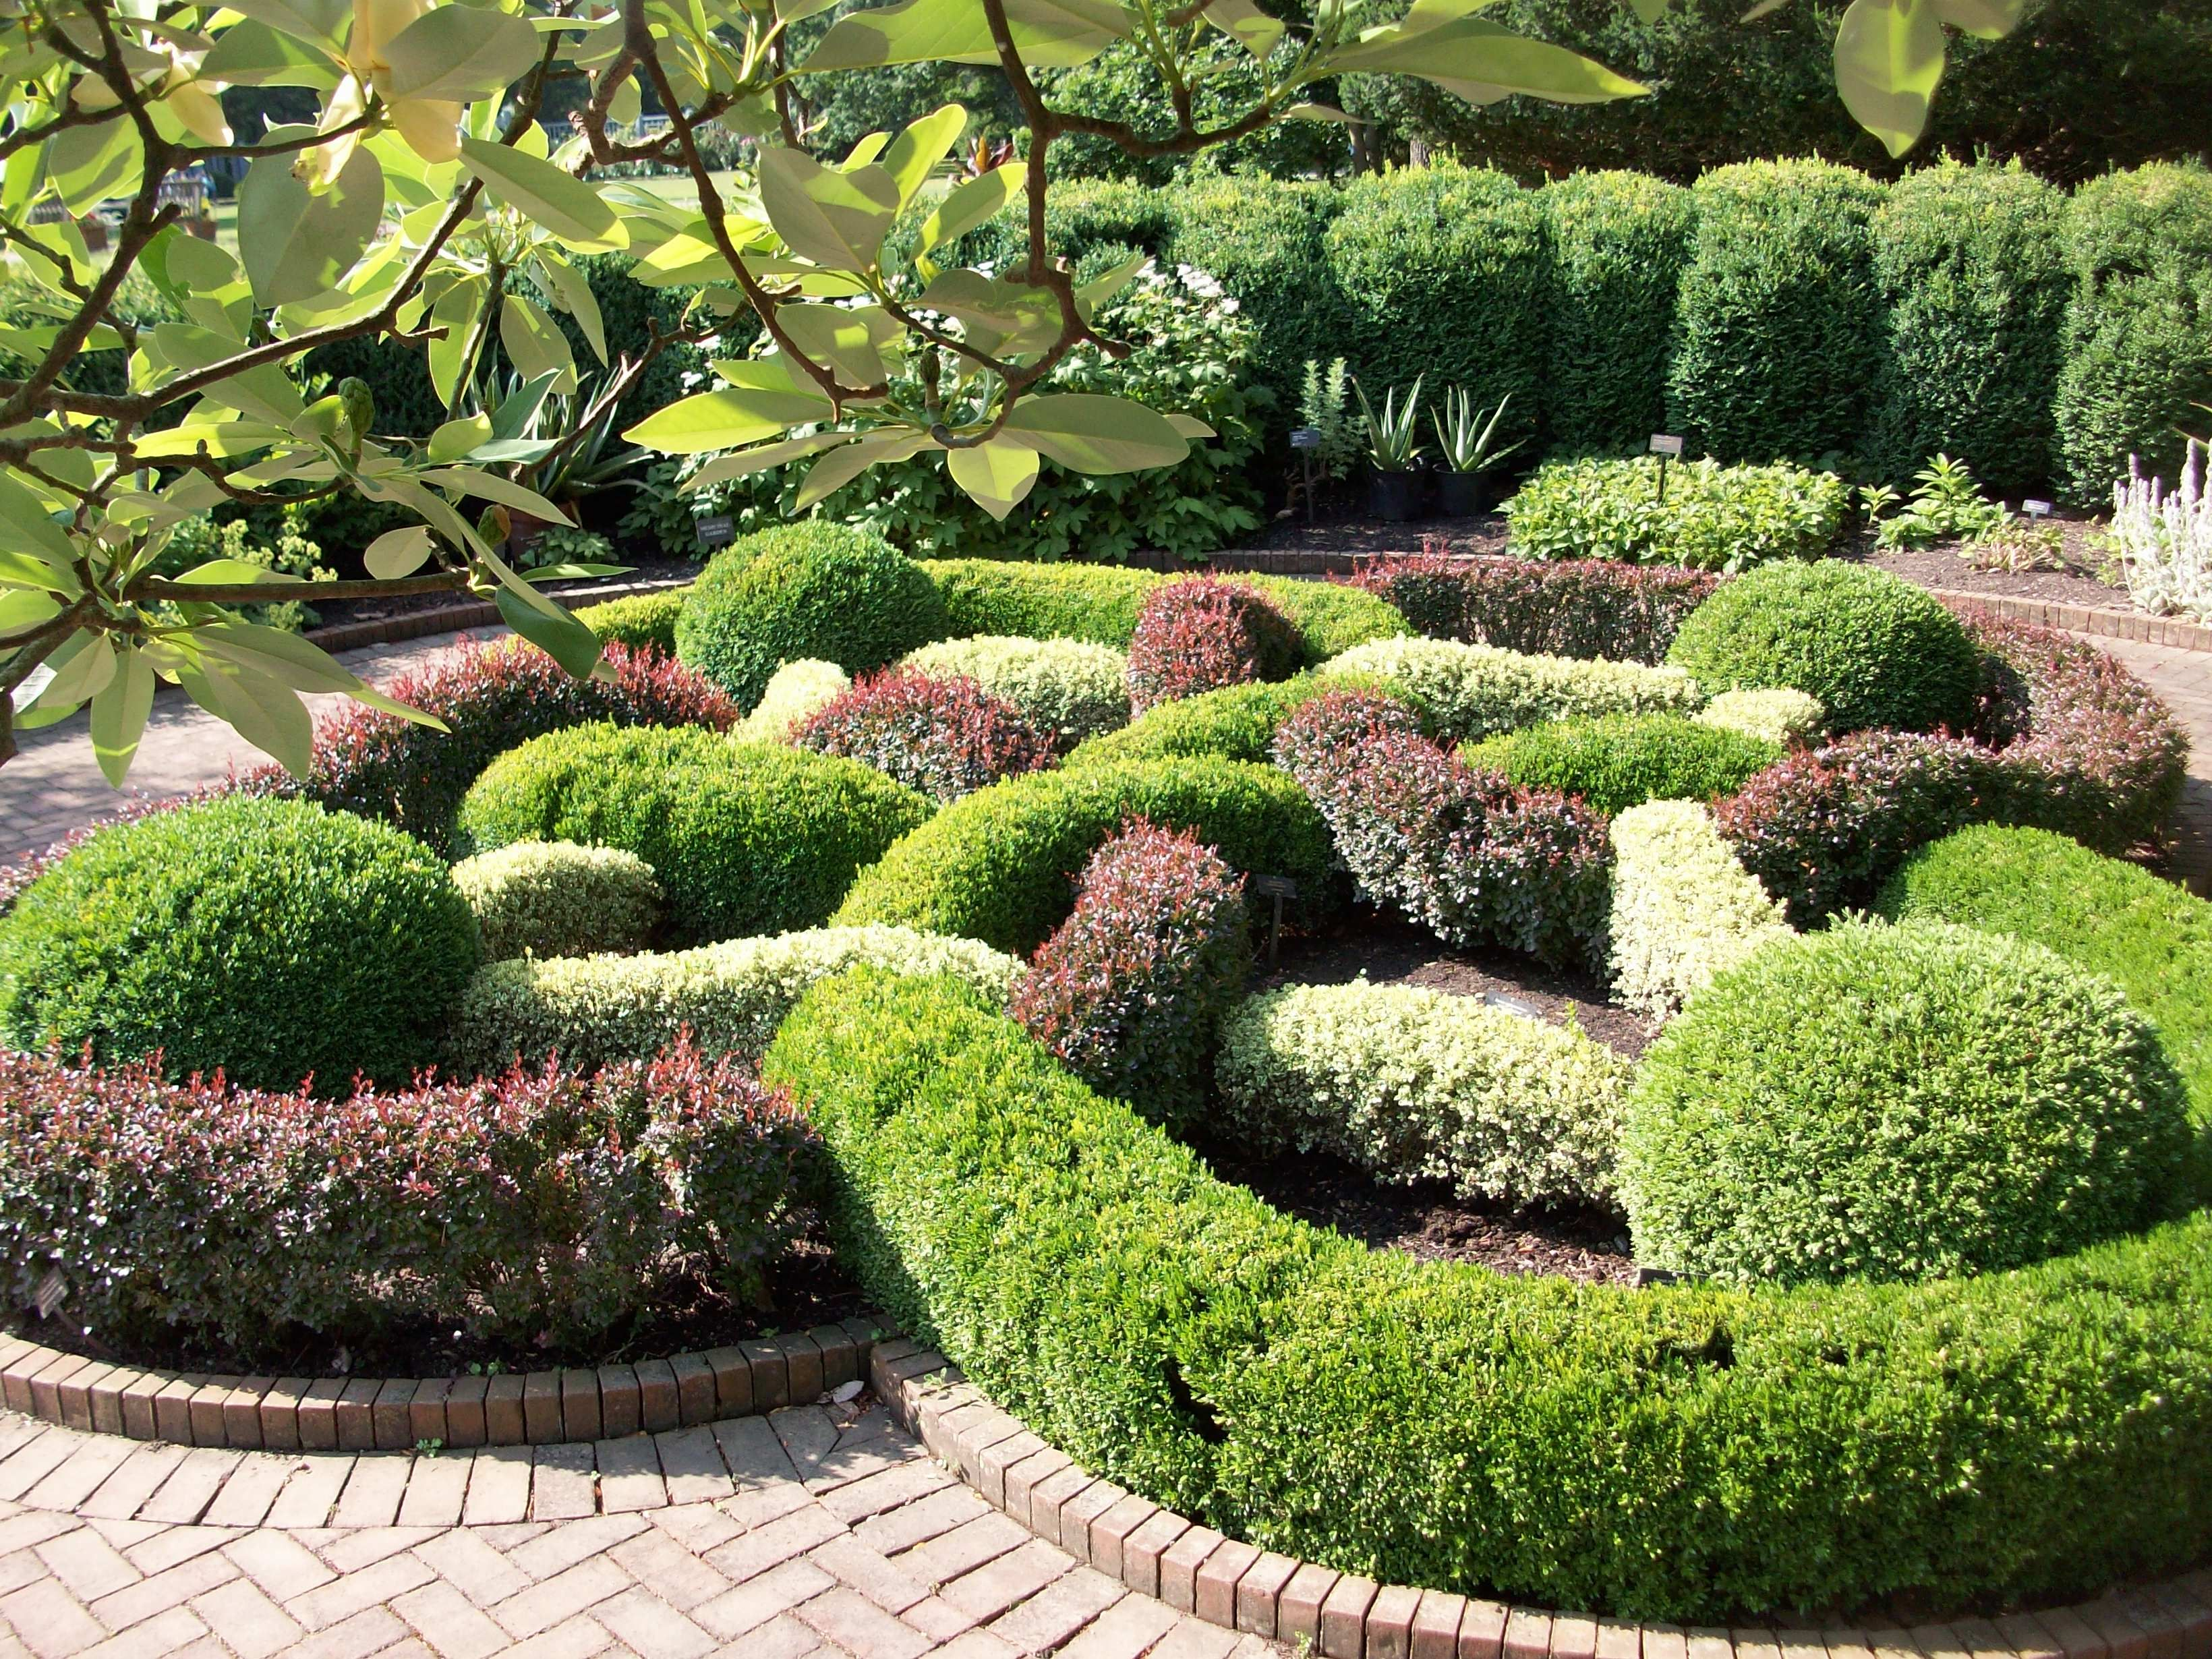 Topiary Garden Design Ideas Part - 27: Knot Gardens Might Be The Ultimate Topiary